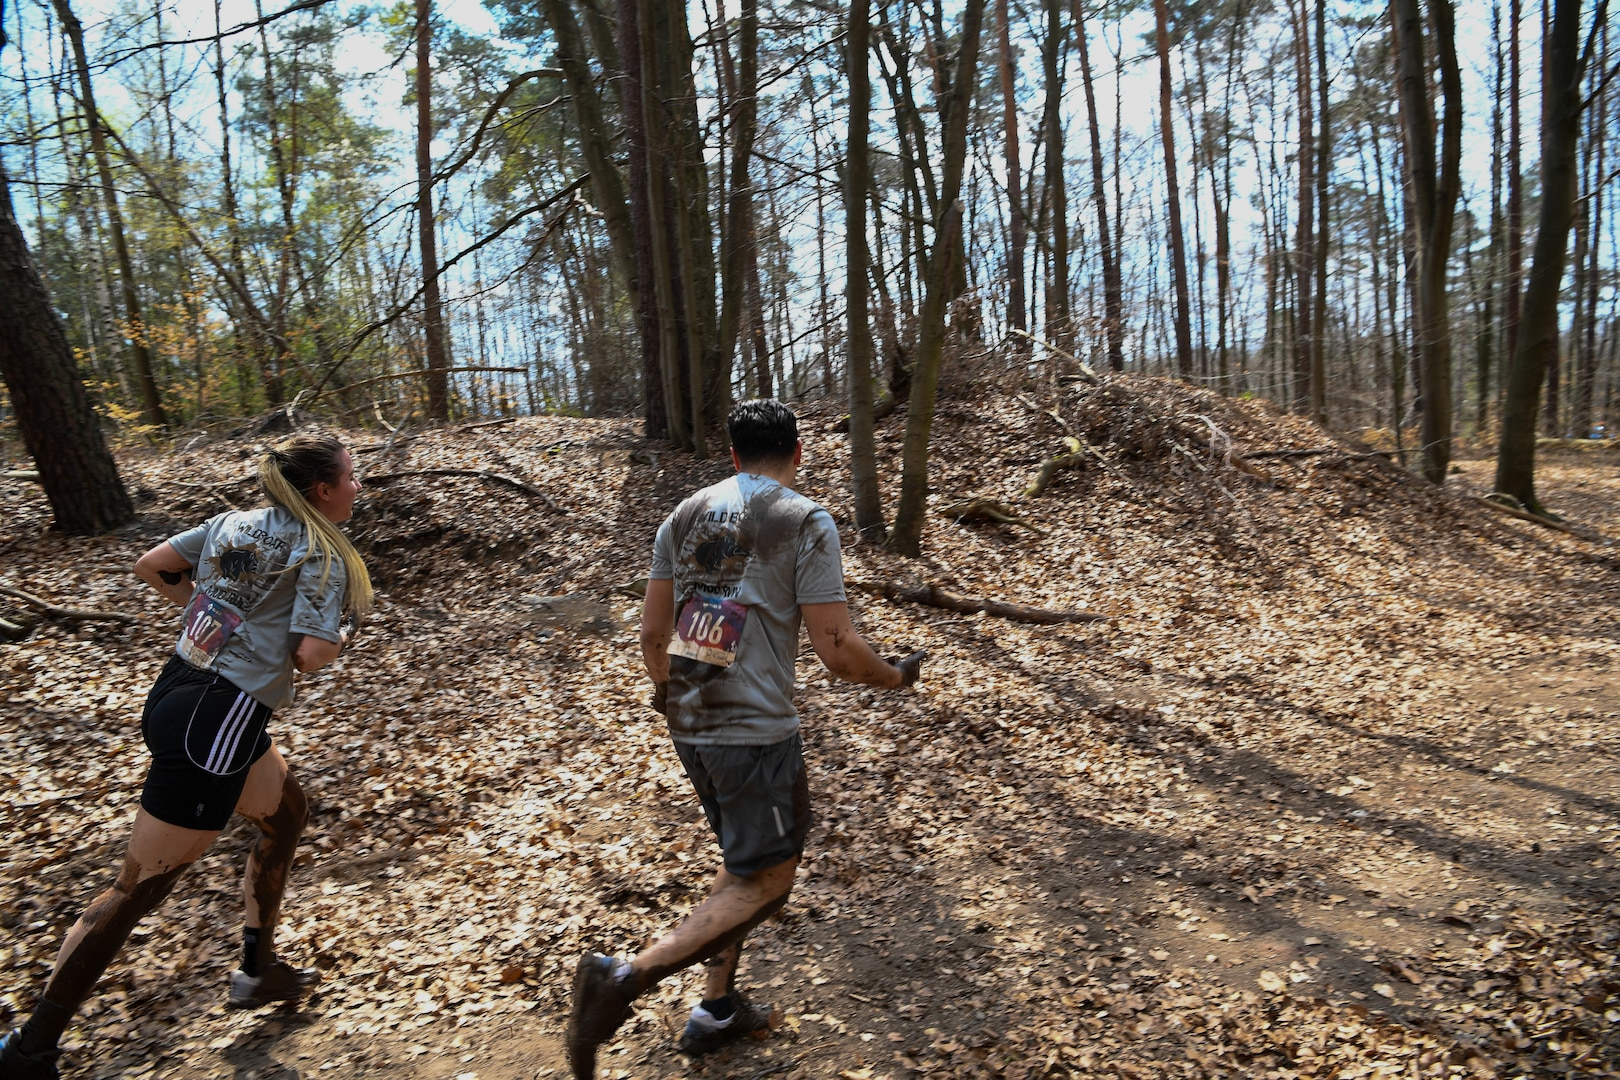 Airman run in the mud.